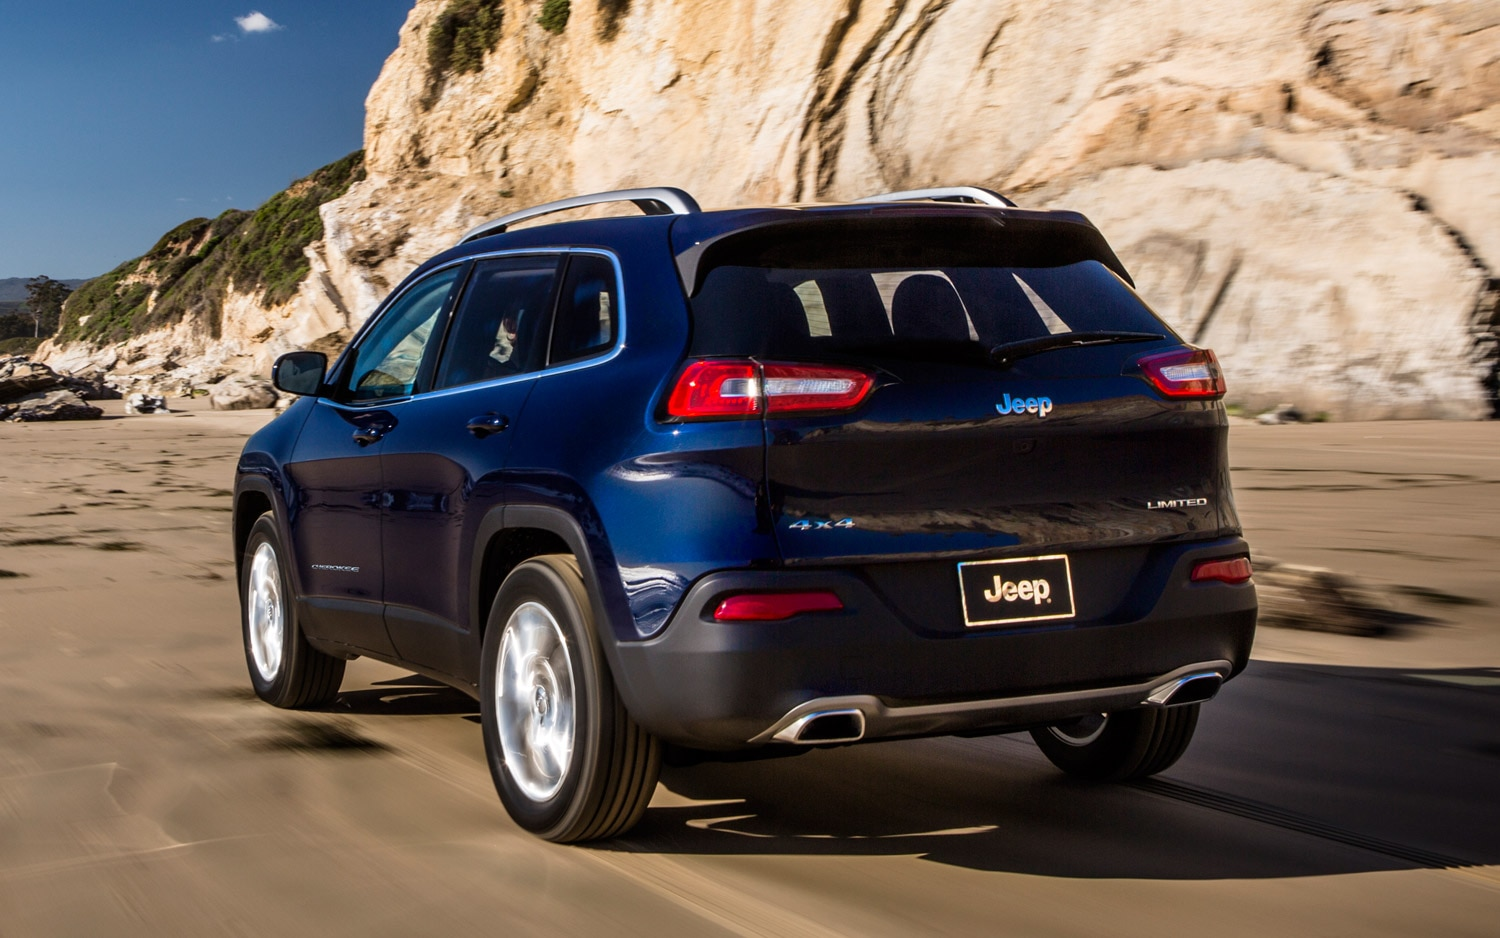 2014 Jeep Cherokee Limited Rear Three Quarter11